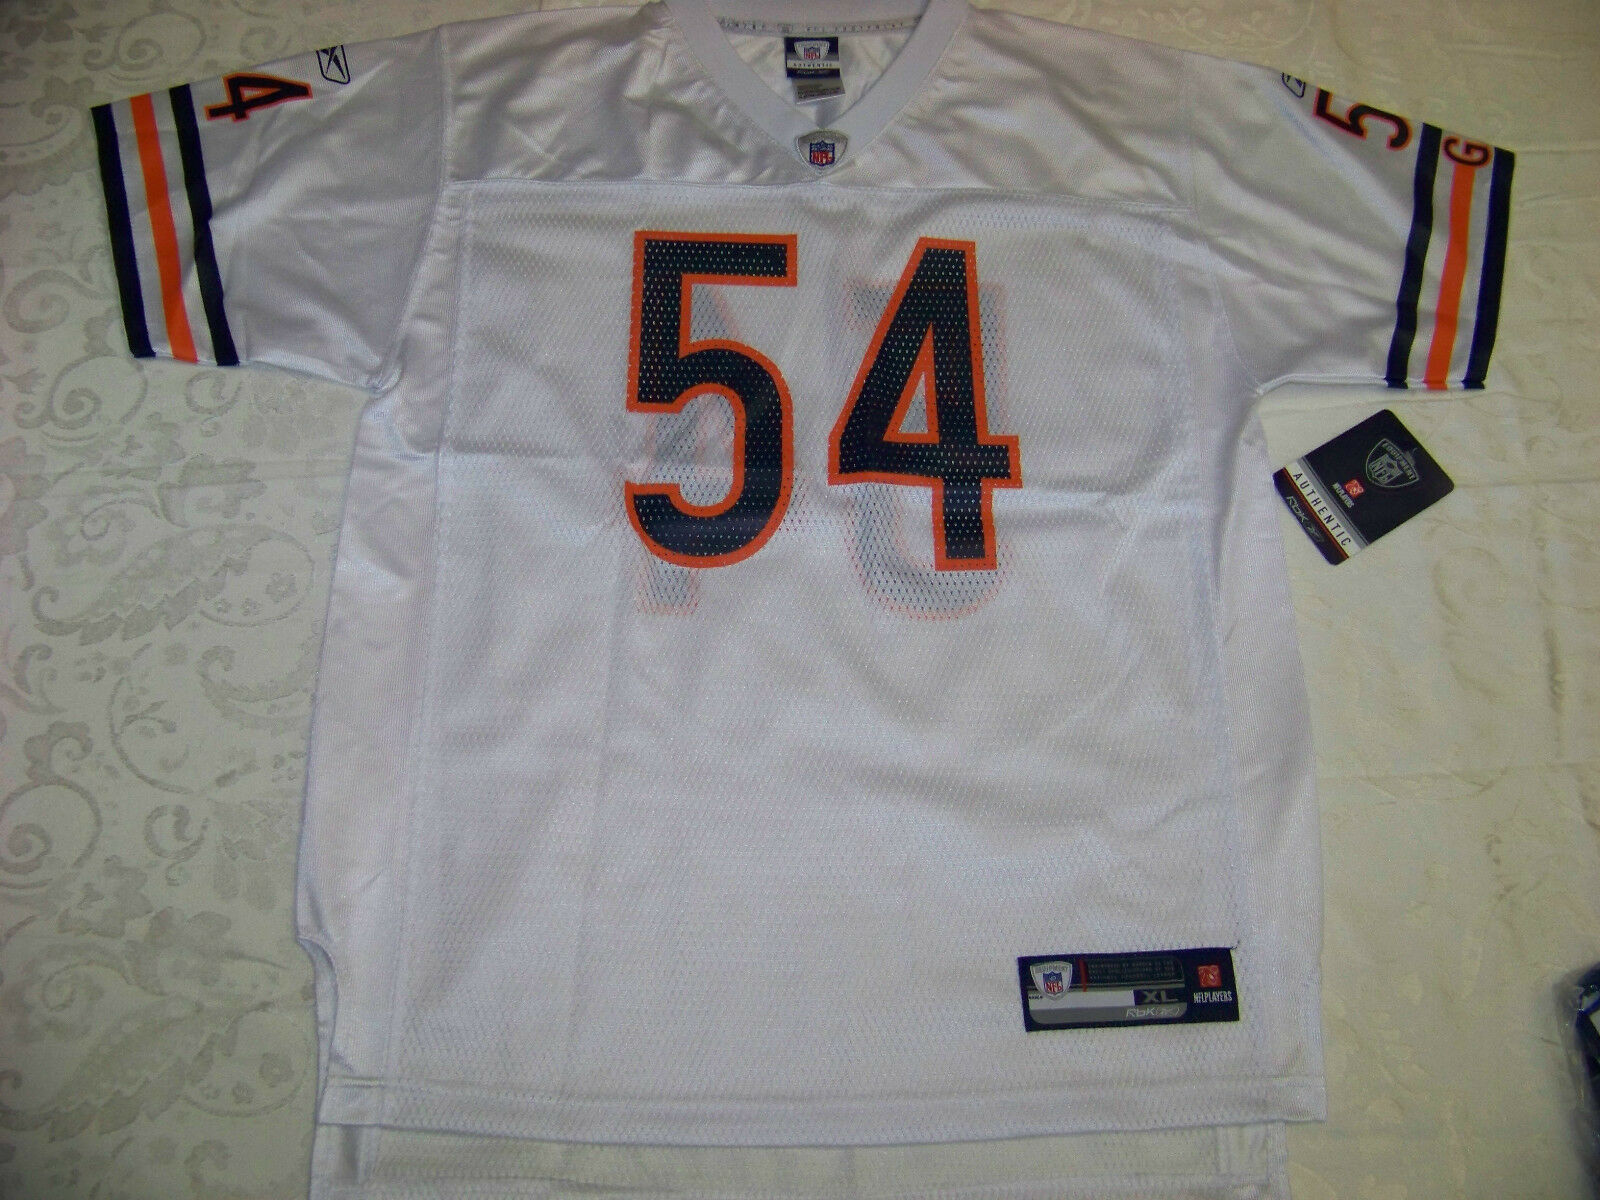 644e49dfb ... Reebok Youth Jersey Chicago Bears 54 Brian Urlacher NWT XL ...